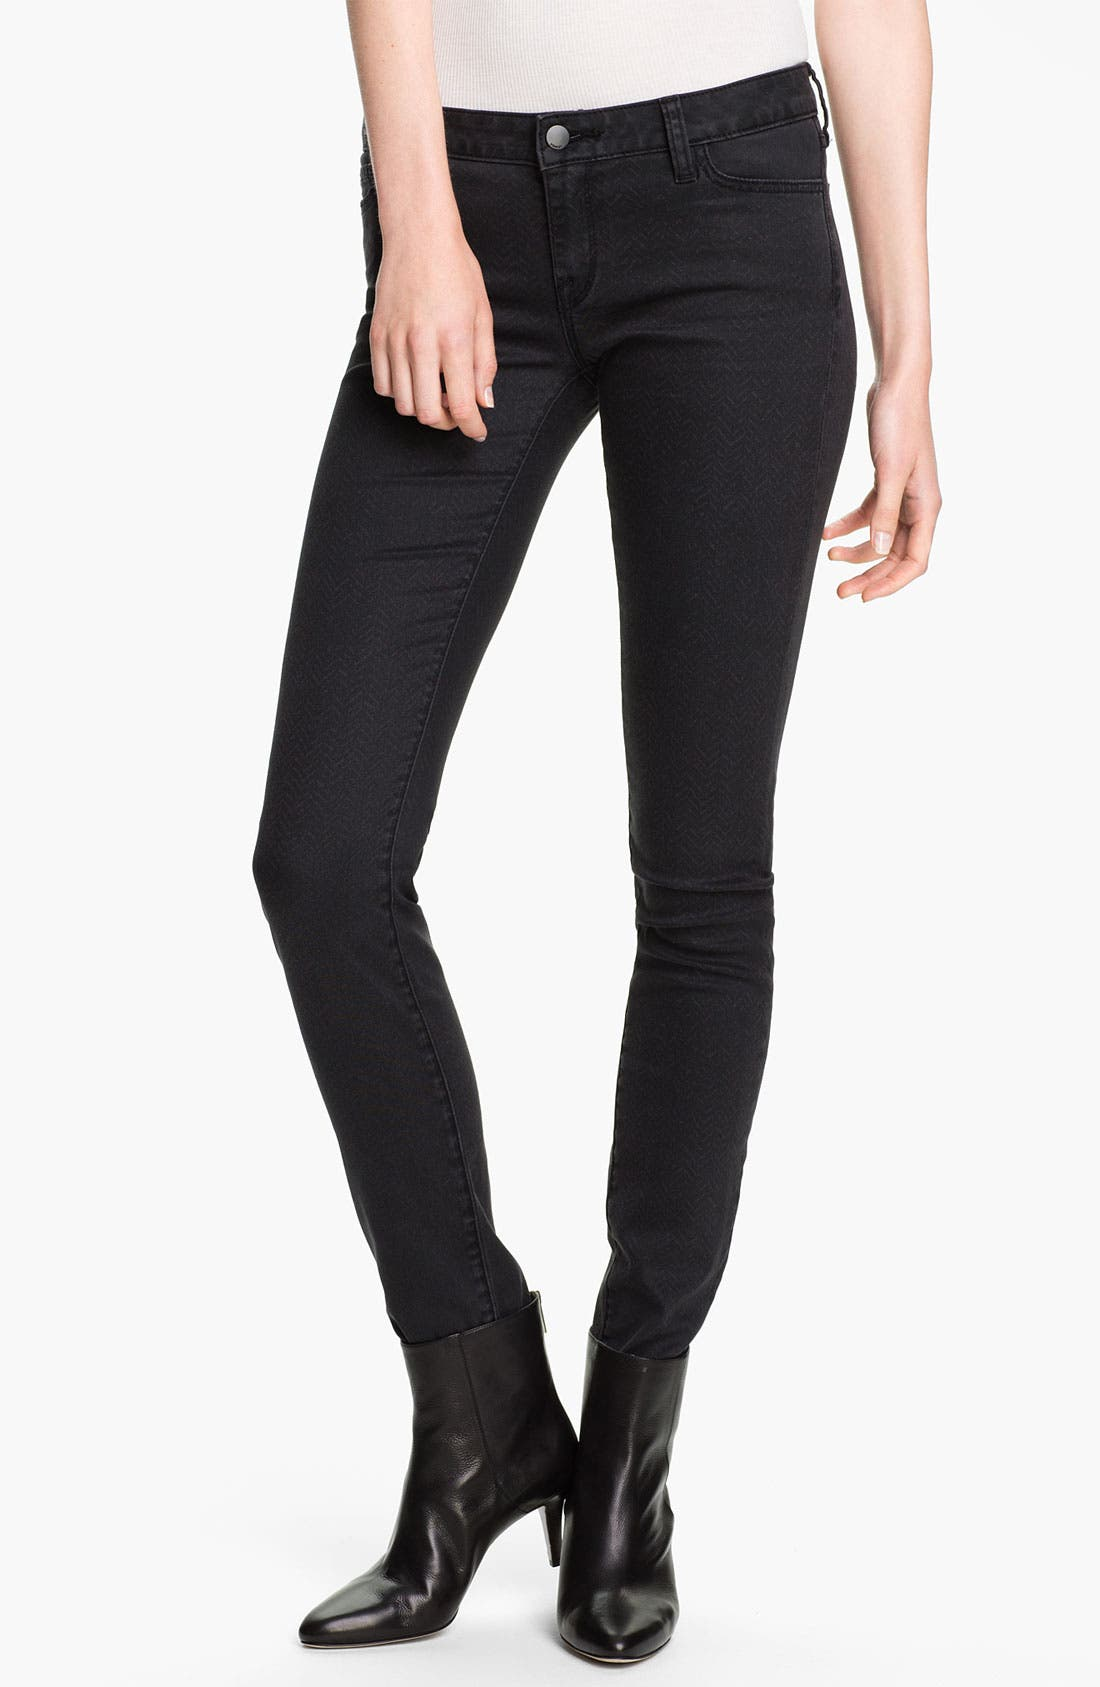 Alternate Image 1 Selected - Vince Print Stretch Skinny Jeans (Charcoal Herringbone)